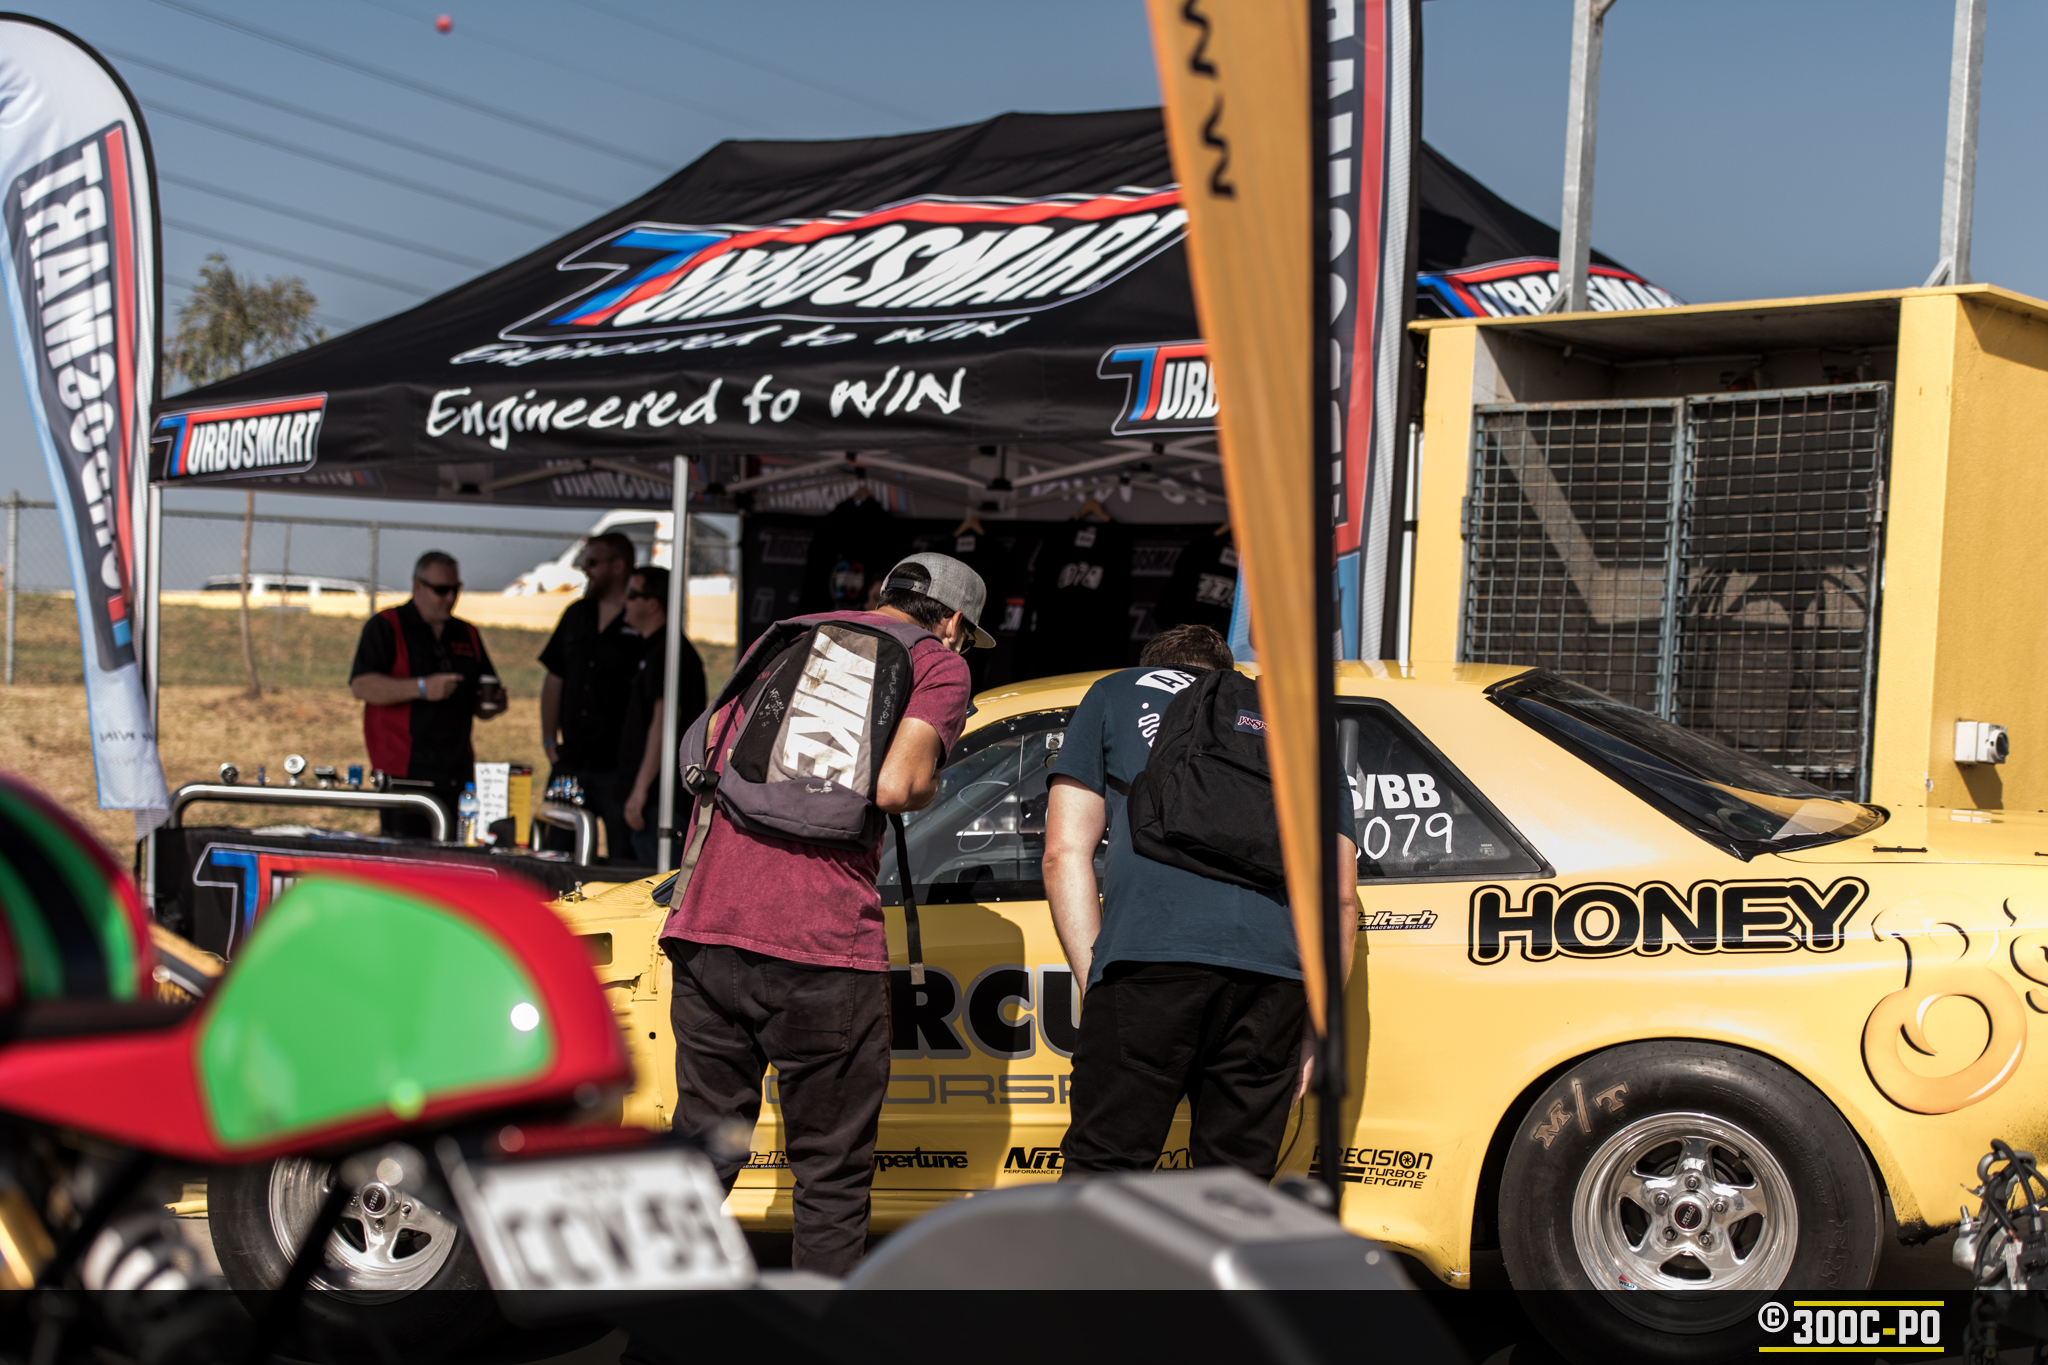 2017-10-13 - WTAC 2017 Day 01 018